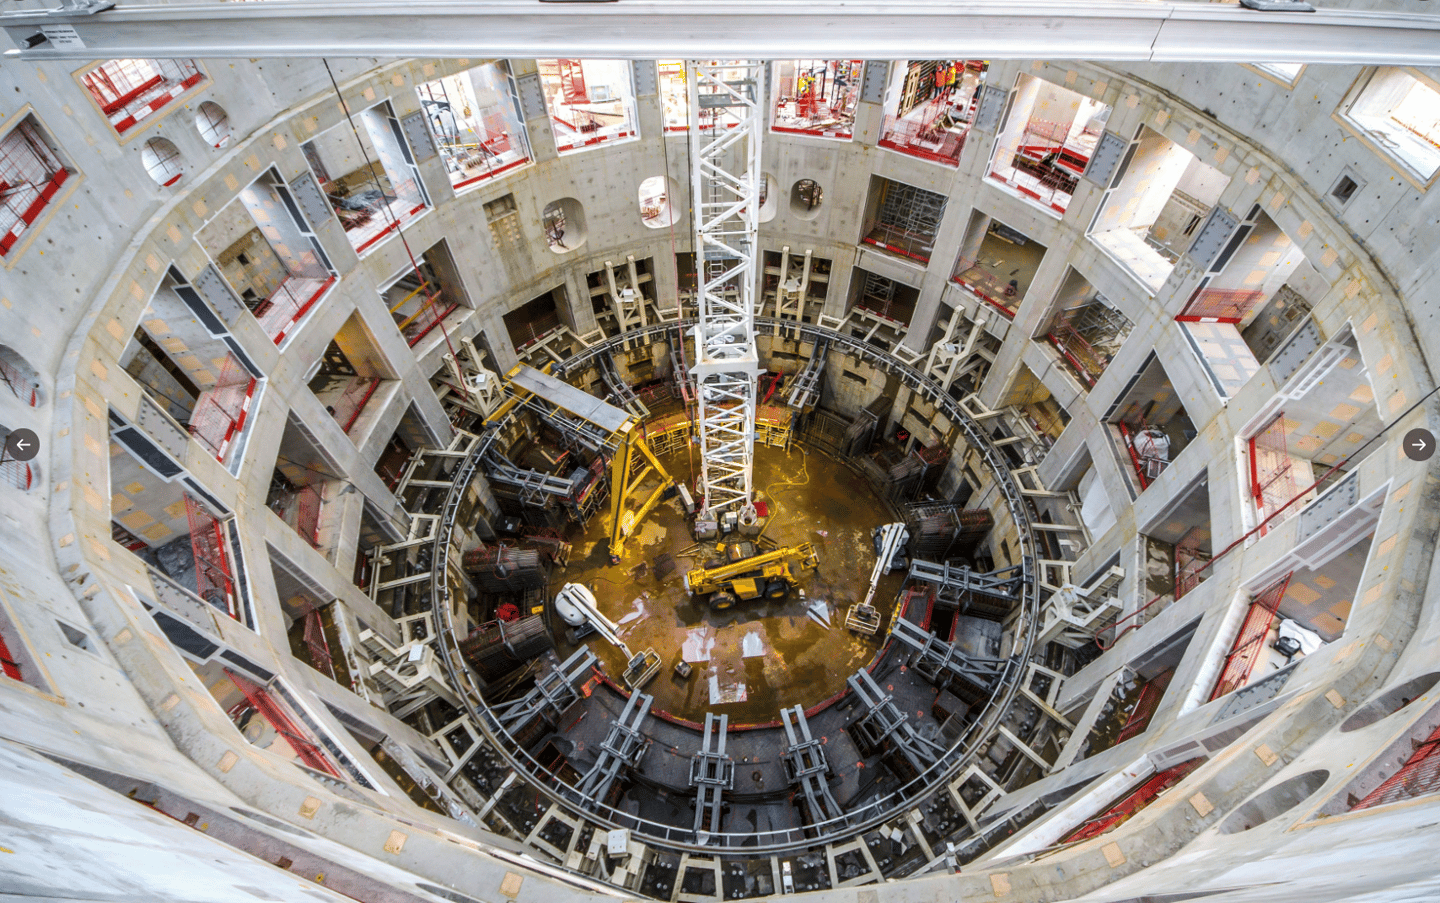 Inside the building that will house the world's largest tokamak reactor